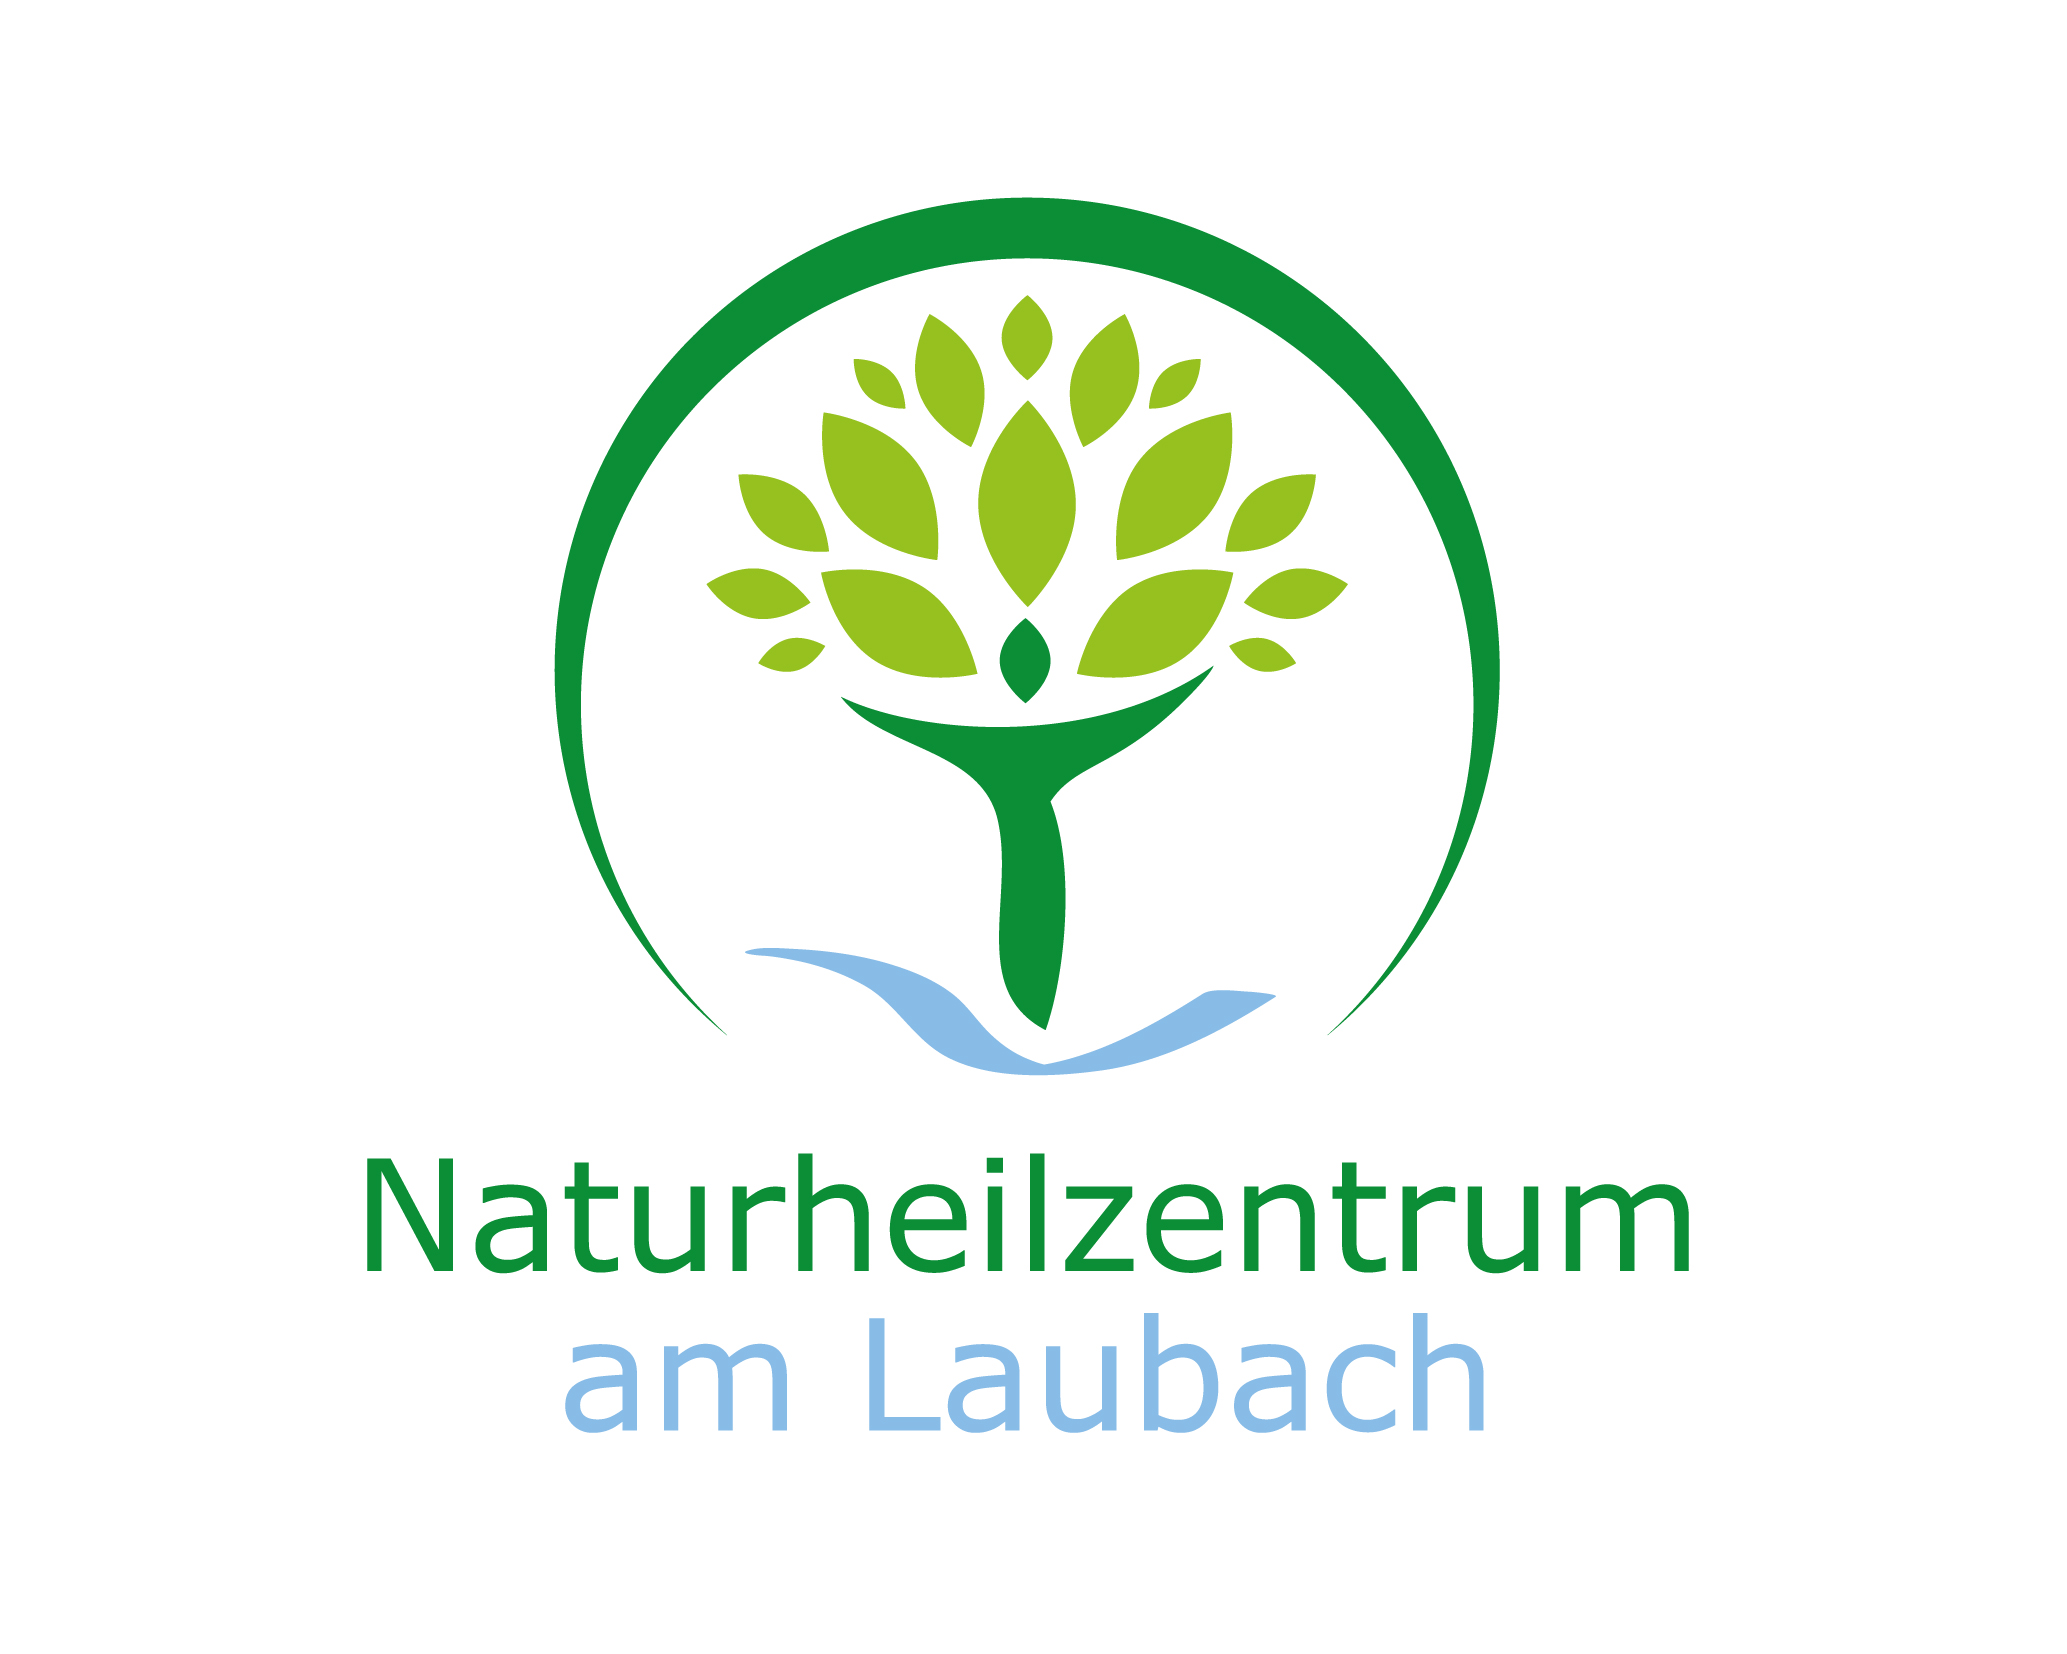 yoga-naturheilzentrum-am-laubach.de